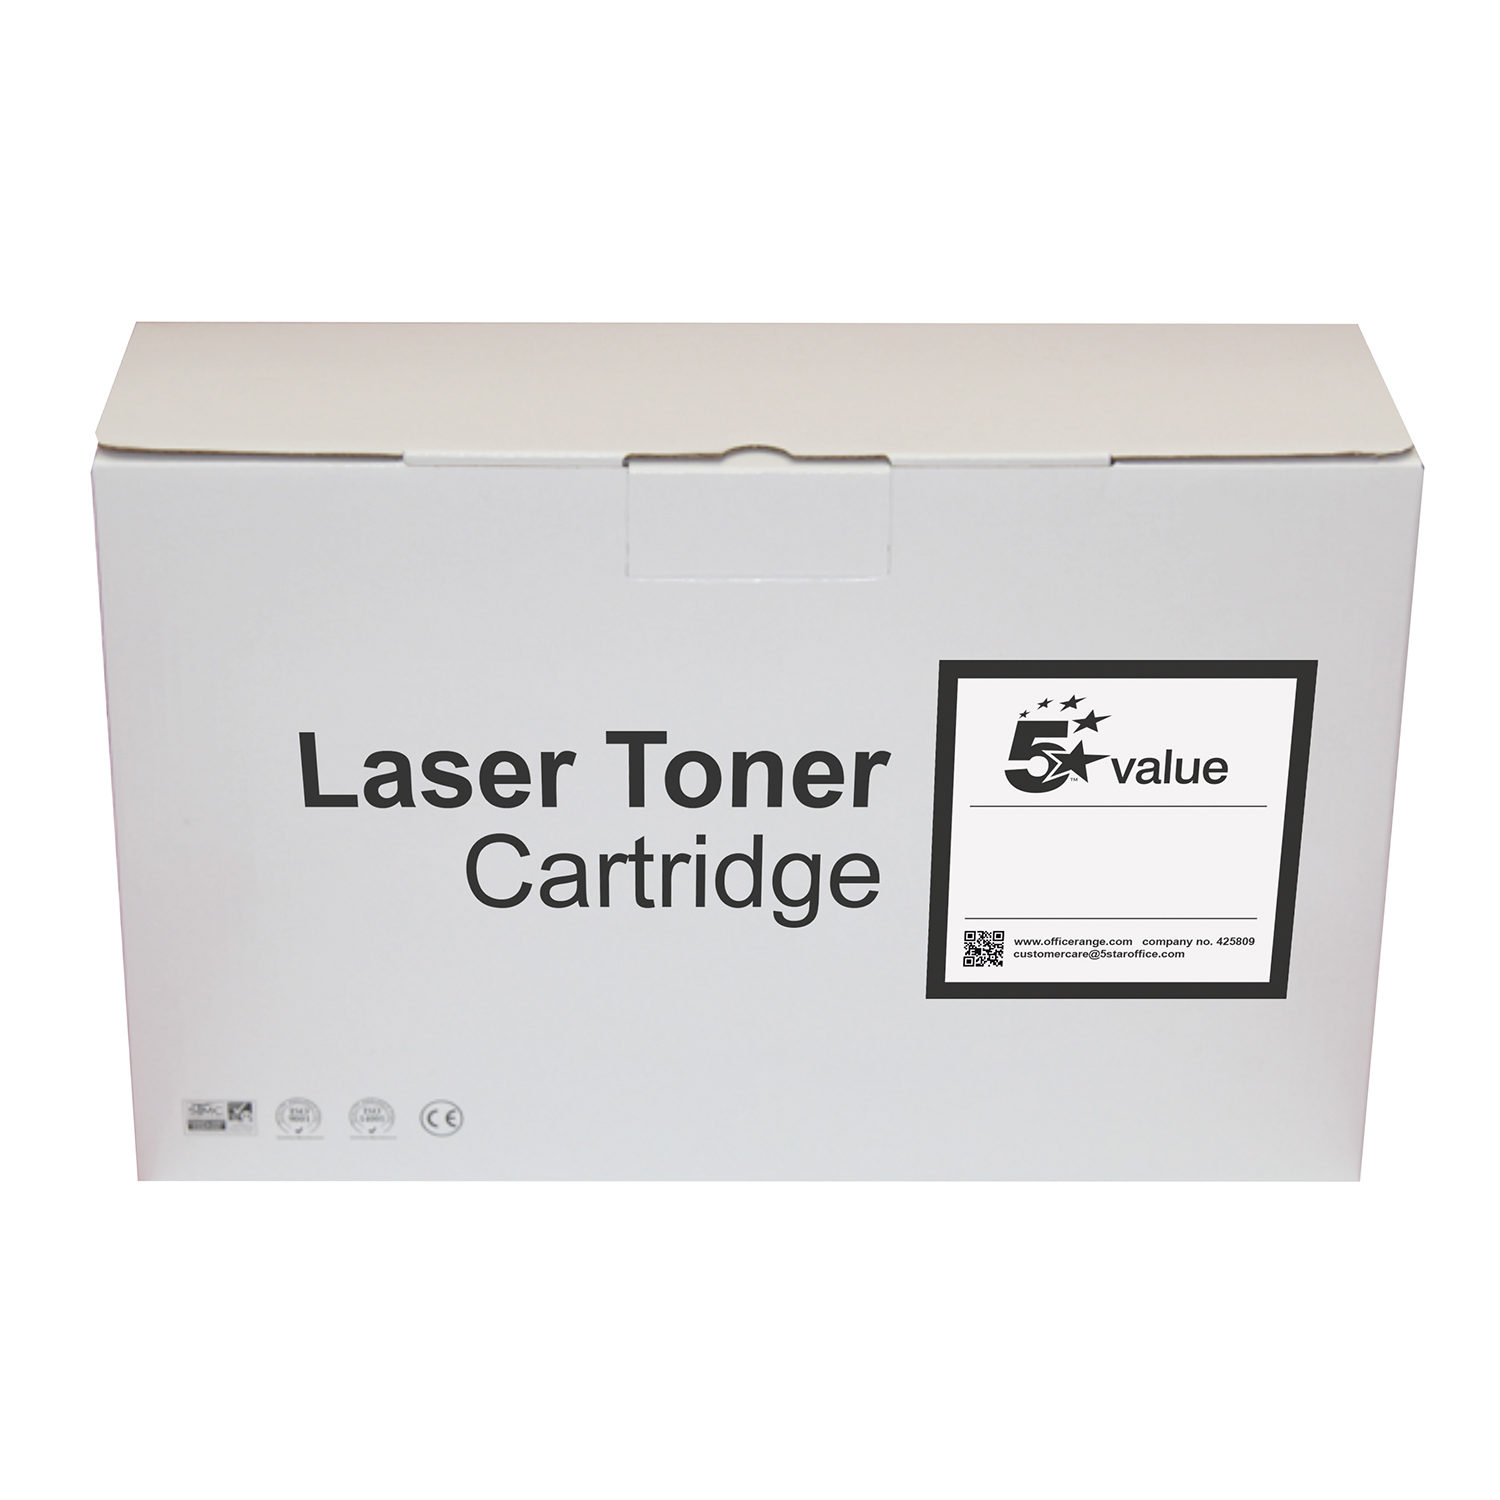 5 Star Value Remanufactured Laser Toner Cartridge Page Life 2100pp Black HP No. 78A CE278A Alternative